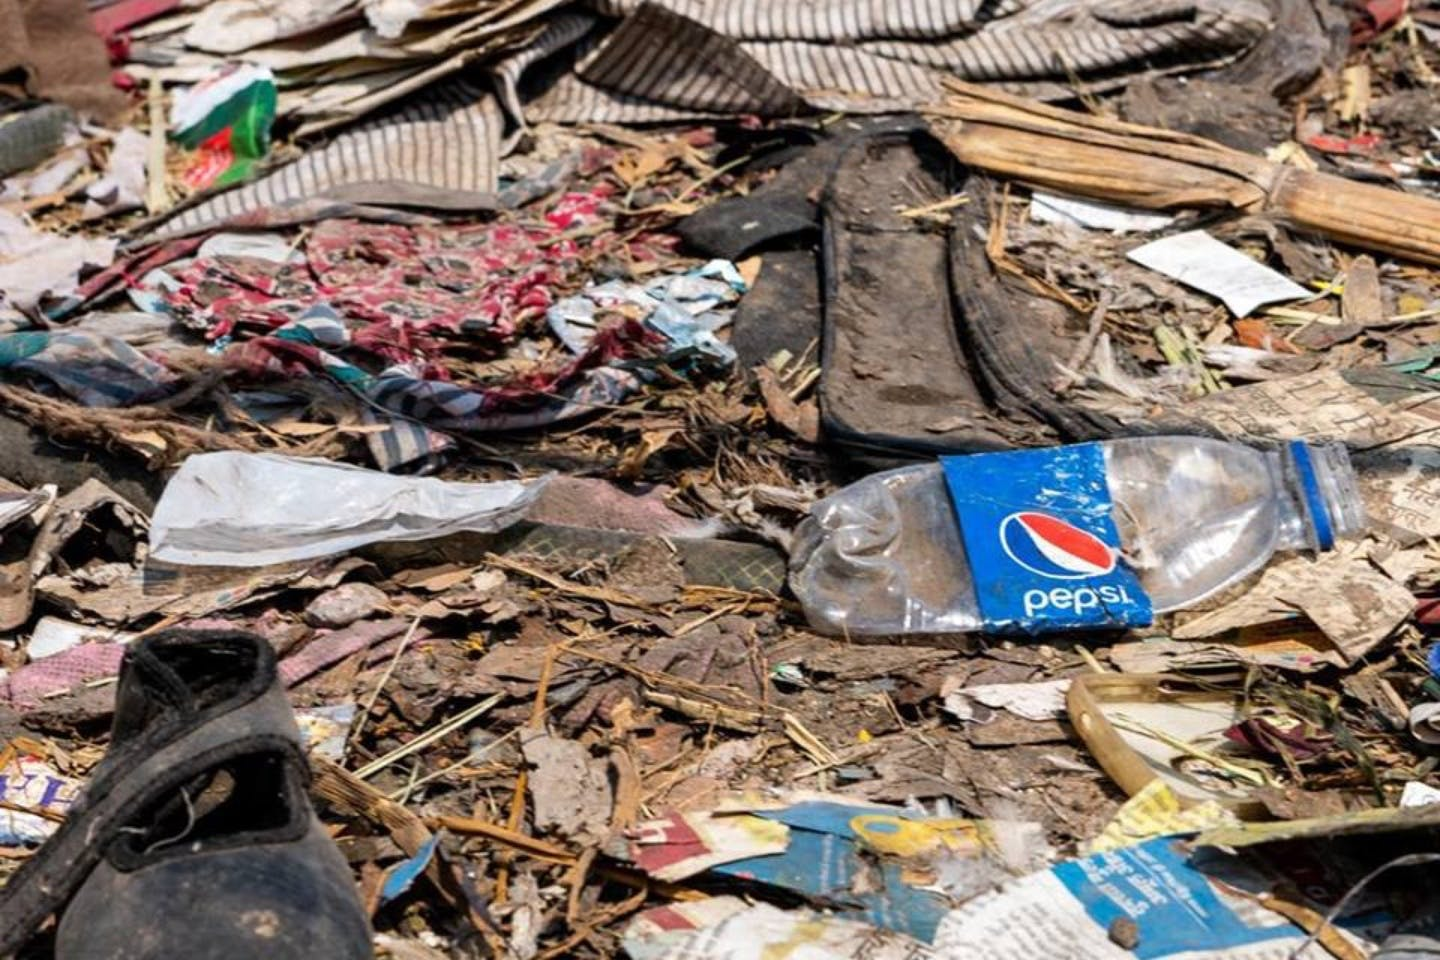 A Pepsi model lies amid other debris. Could plastic-using brands save the circular economy? Image: Eco-Business